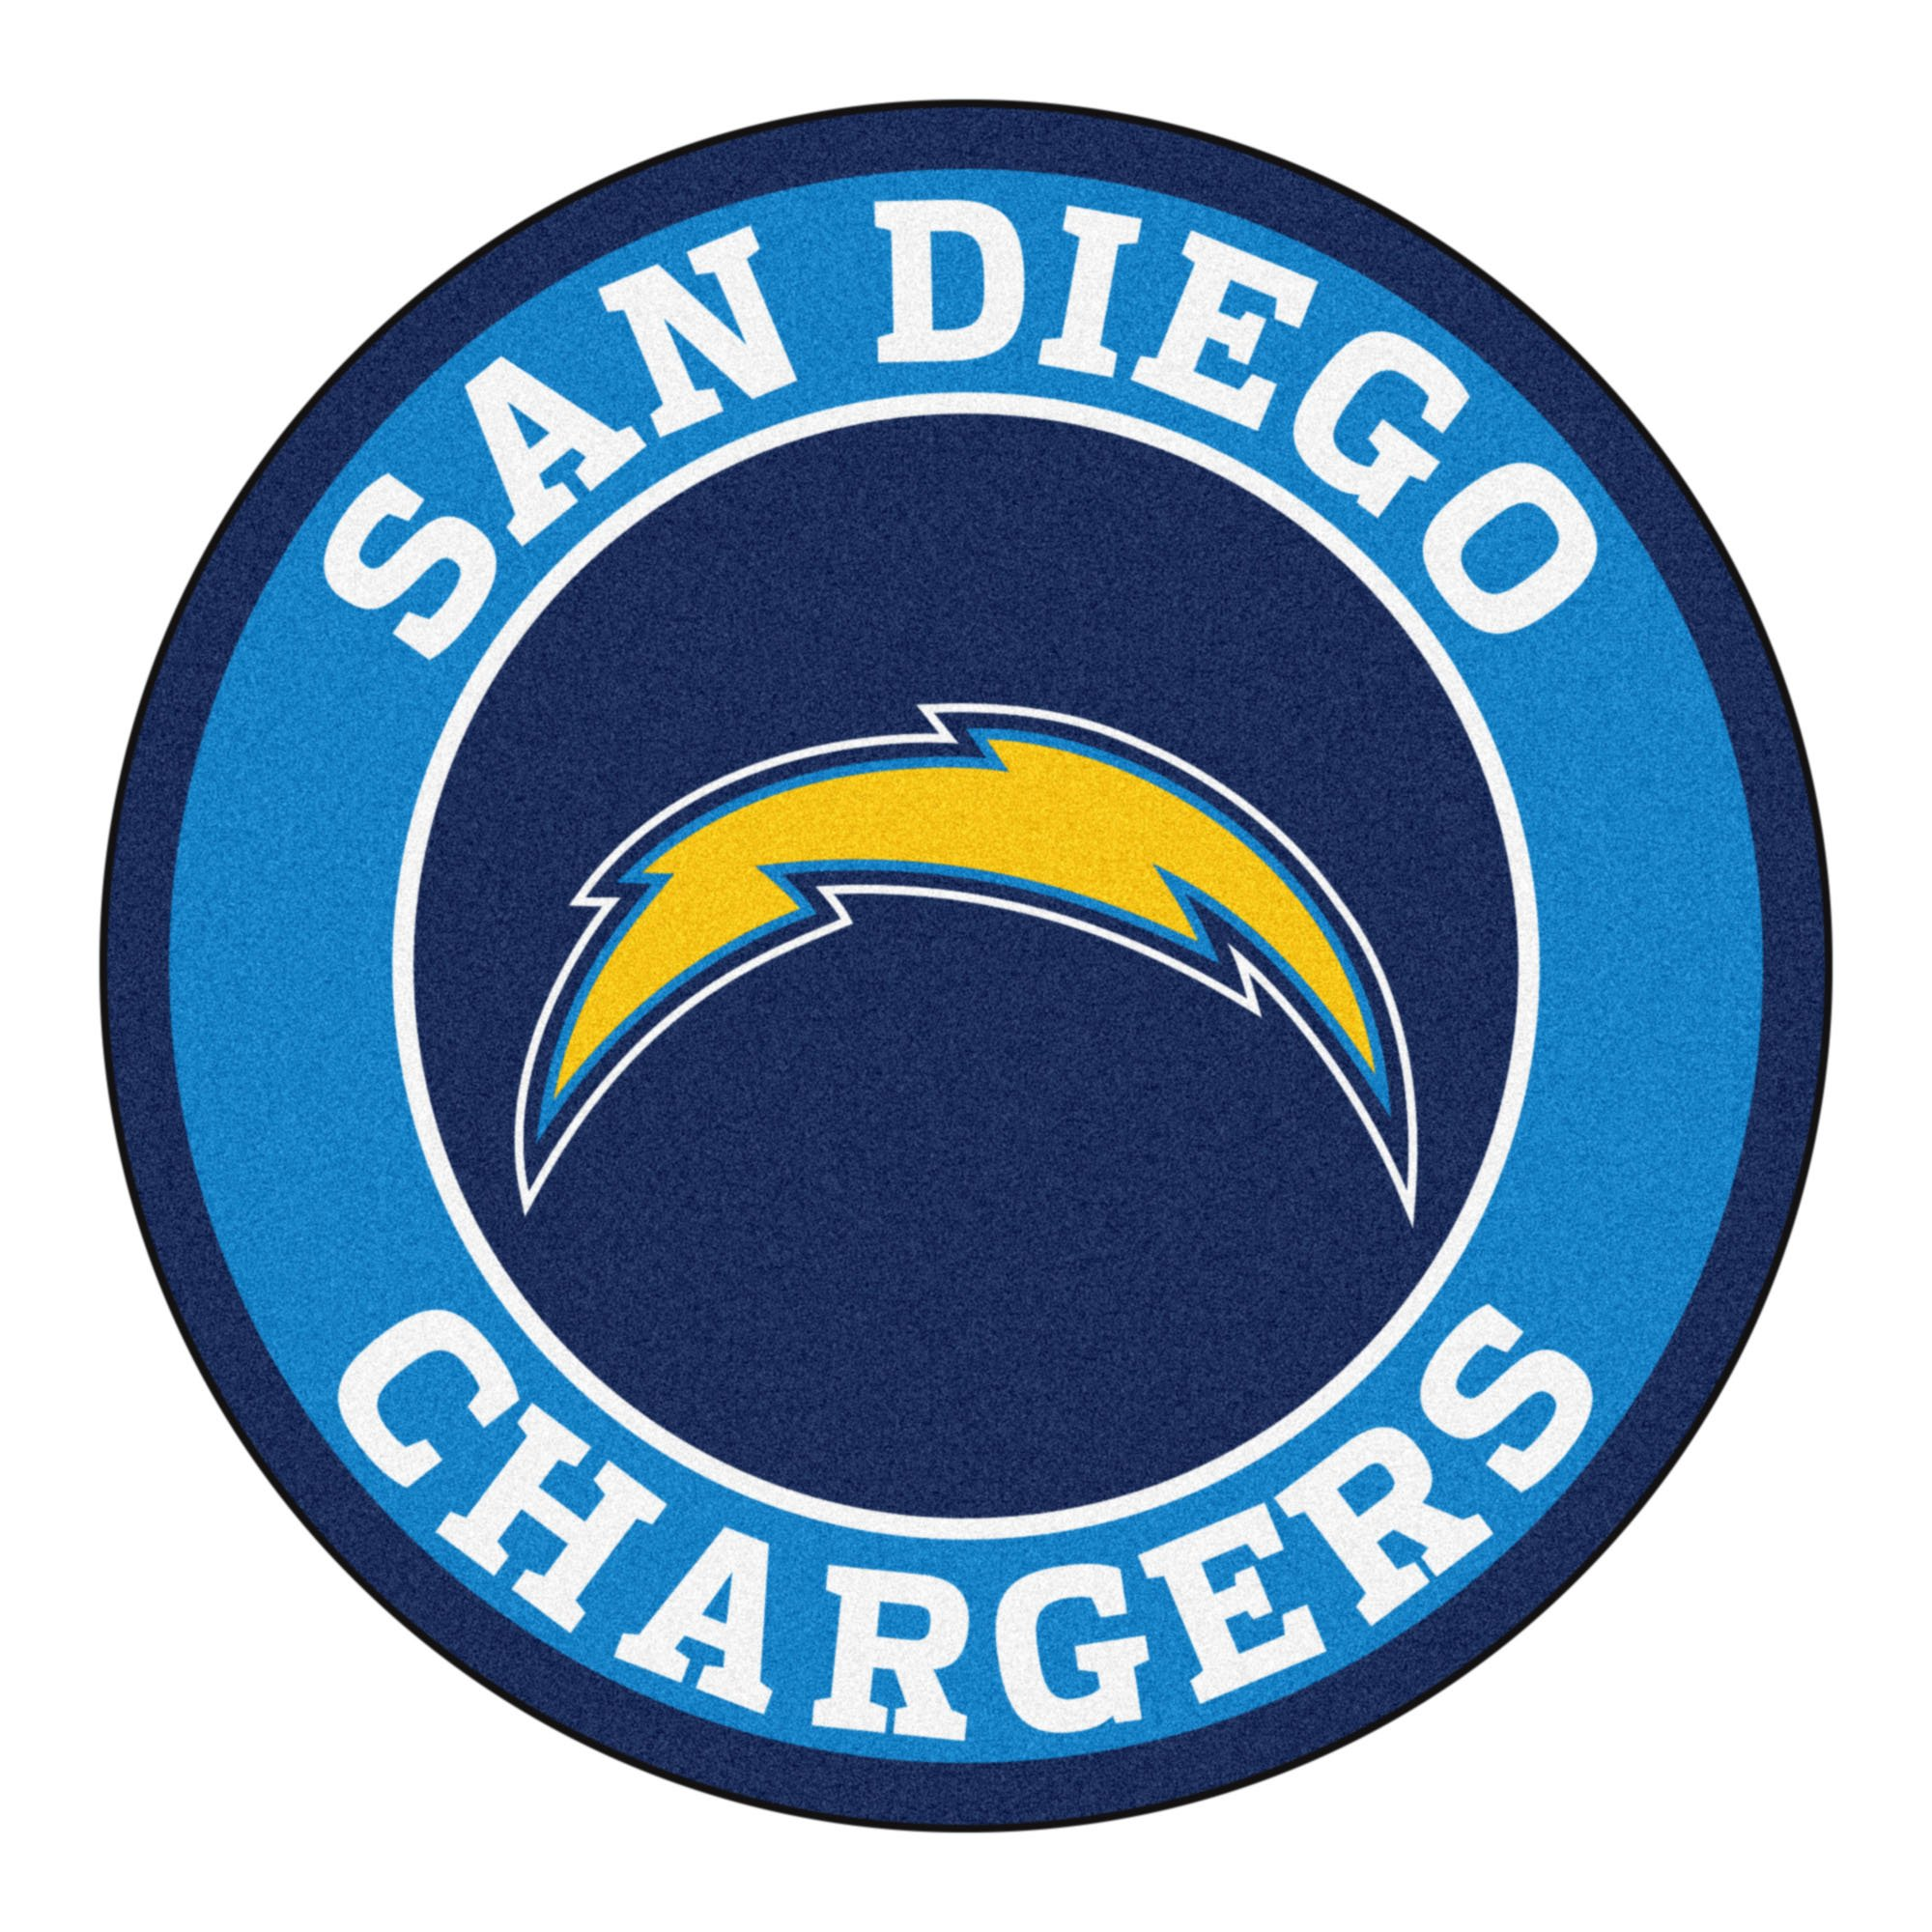 San Diego Chargers Logo Chargers Symbol Meaning History